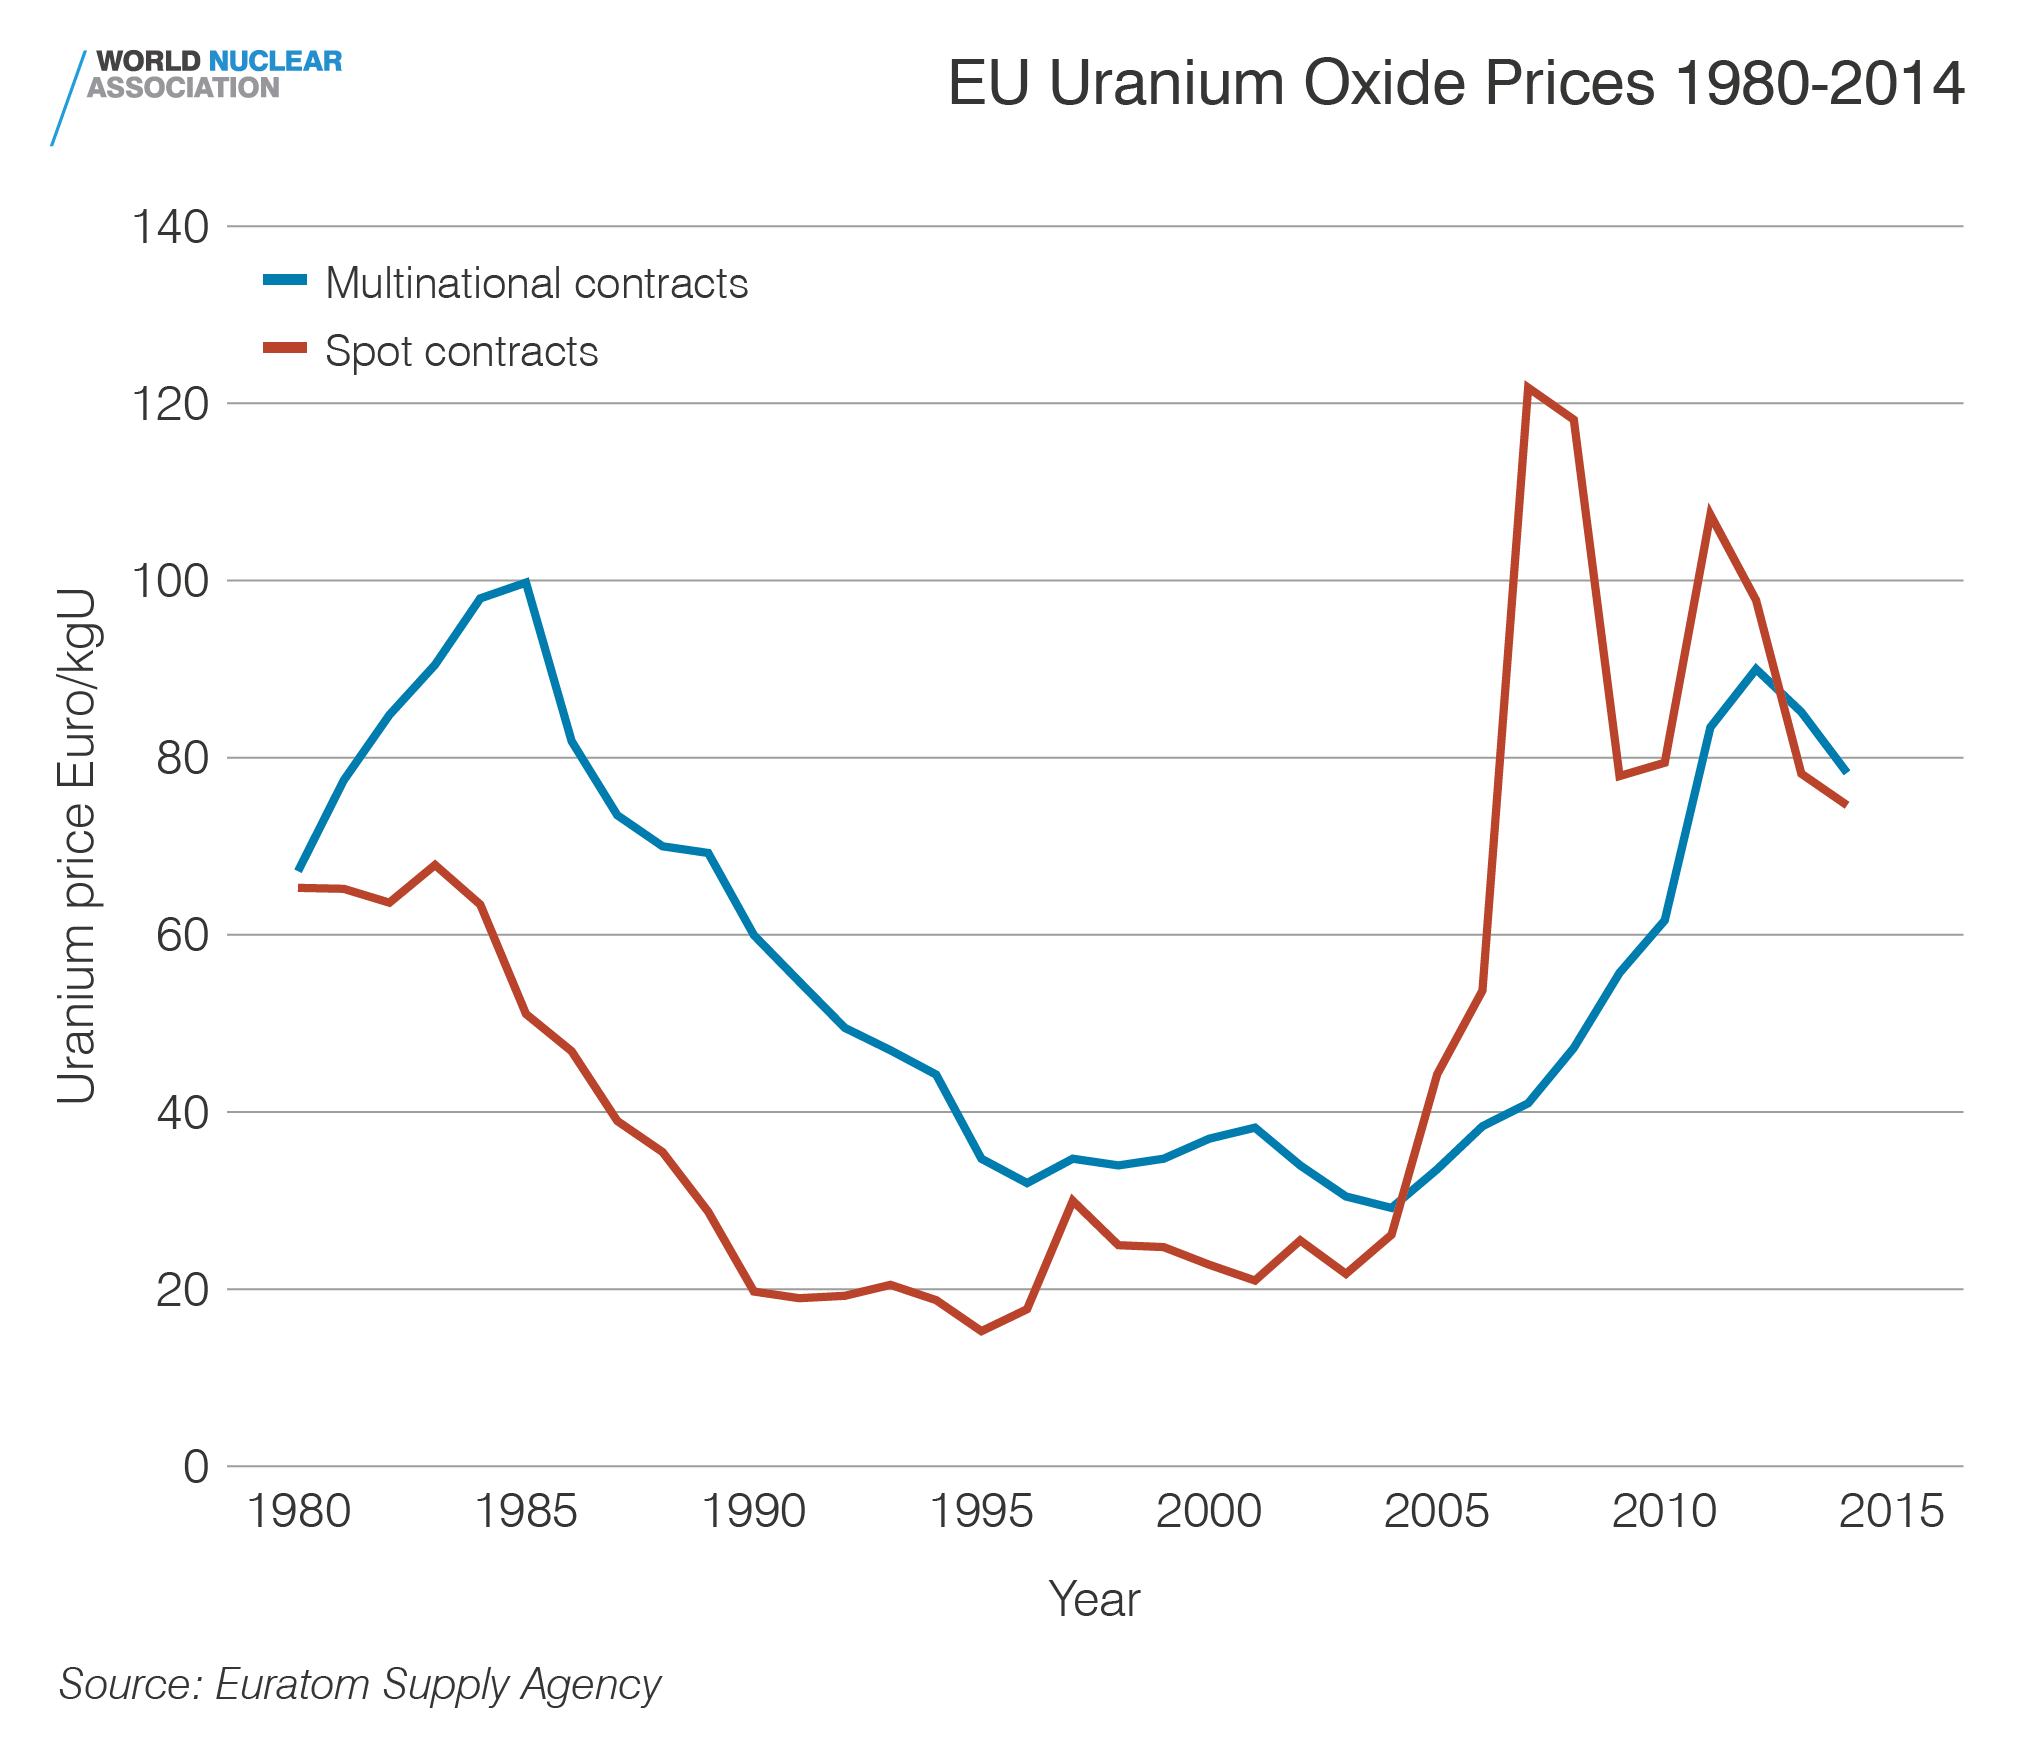 EU uranium oxide prices 1980-2014